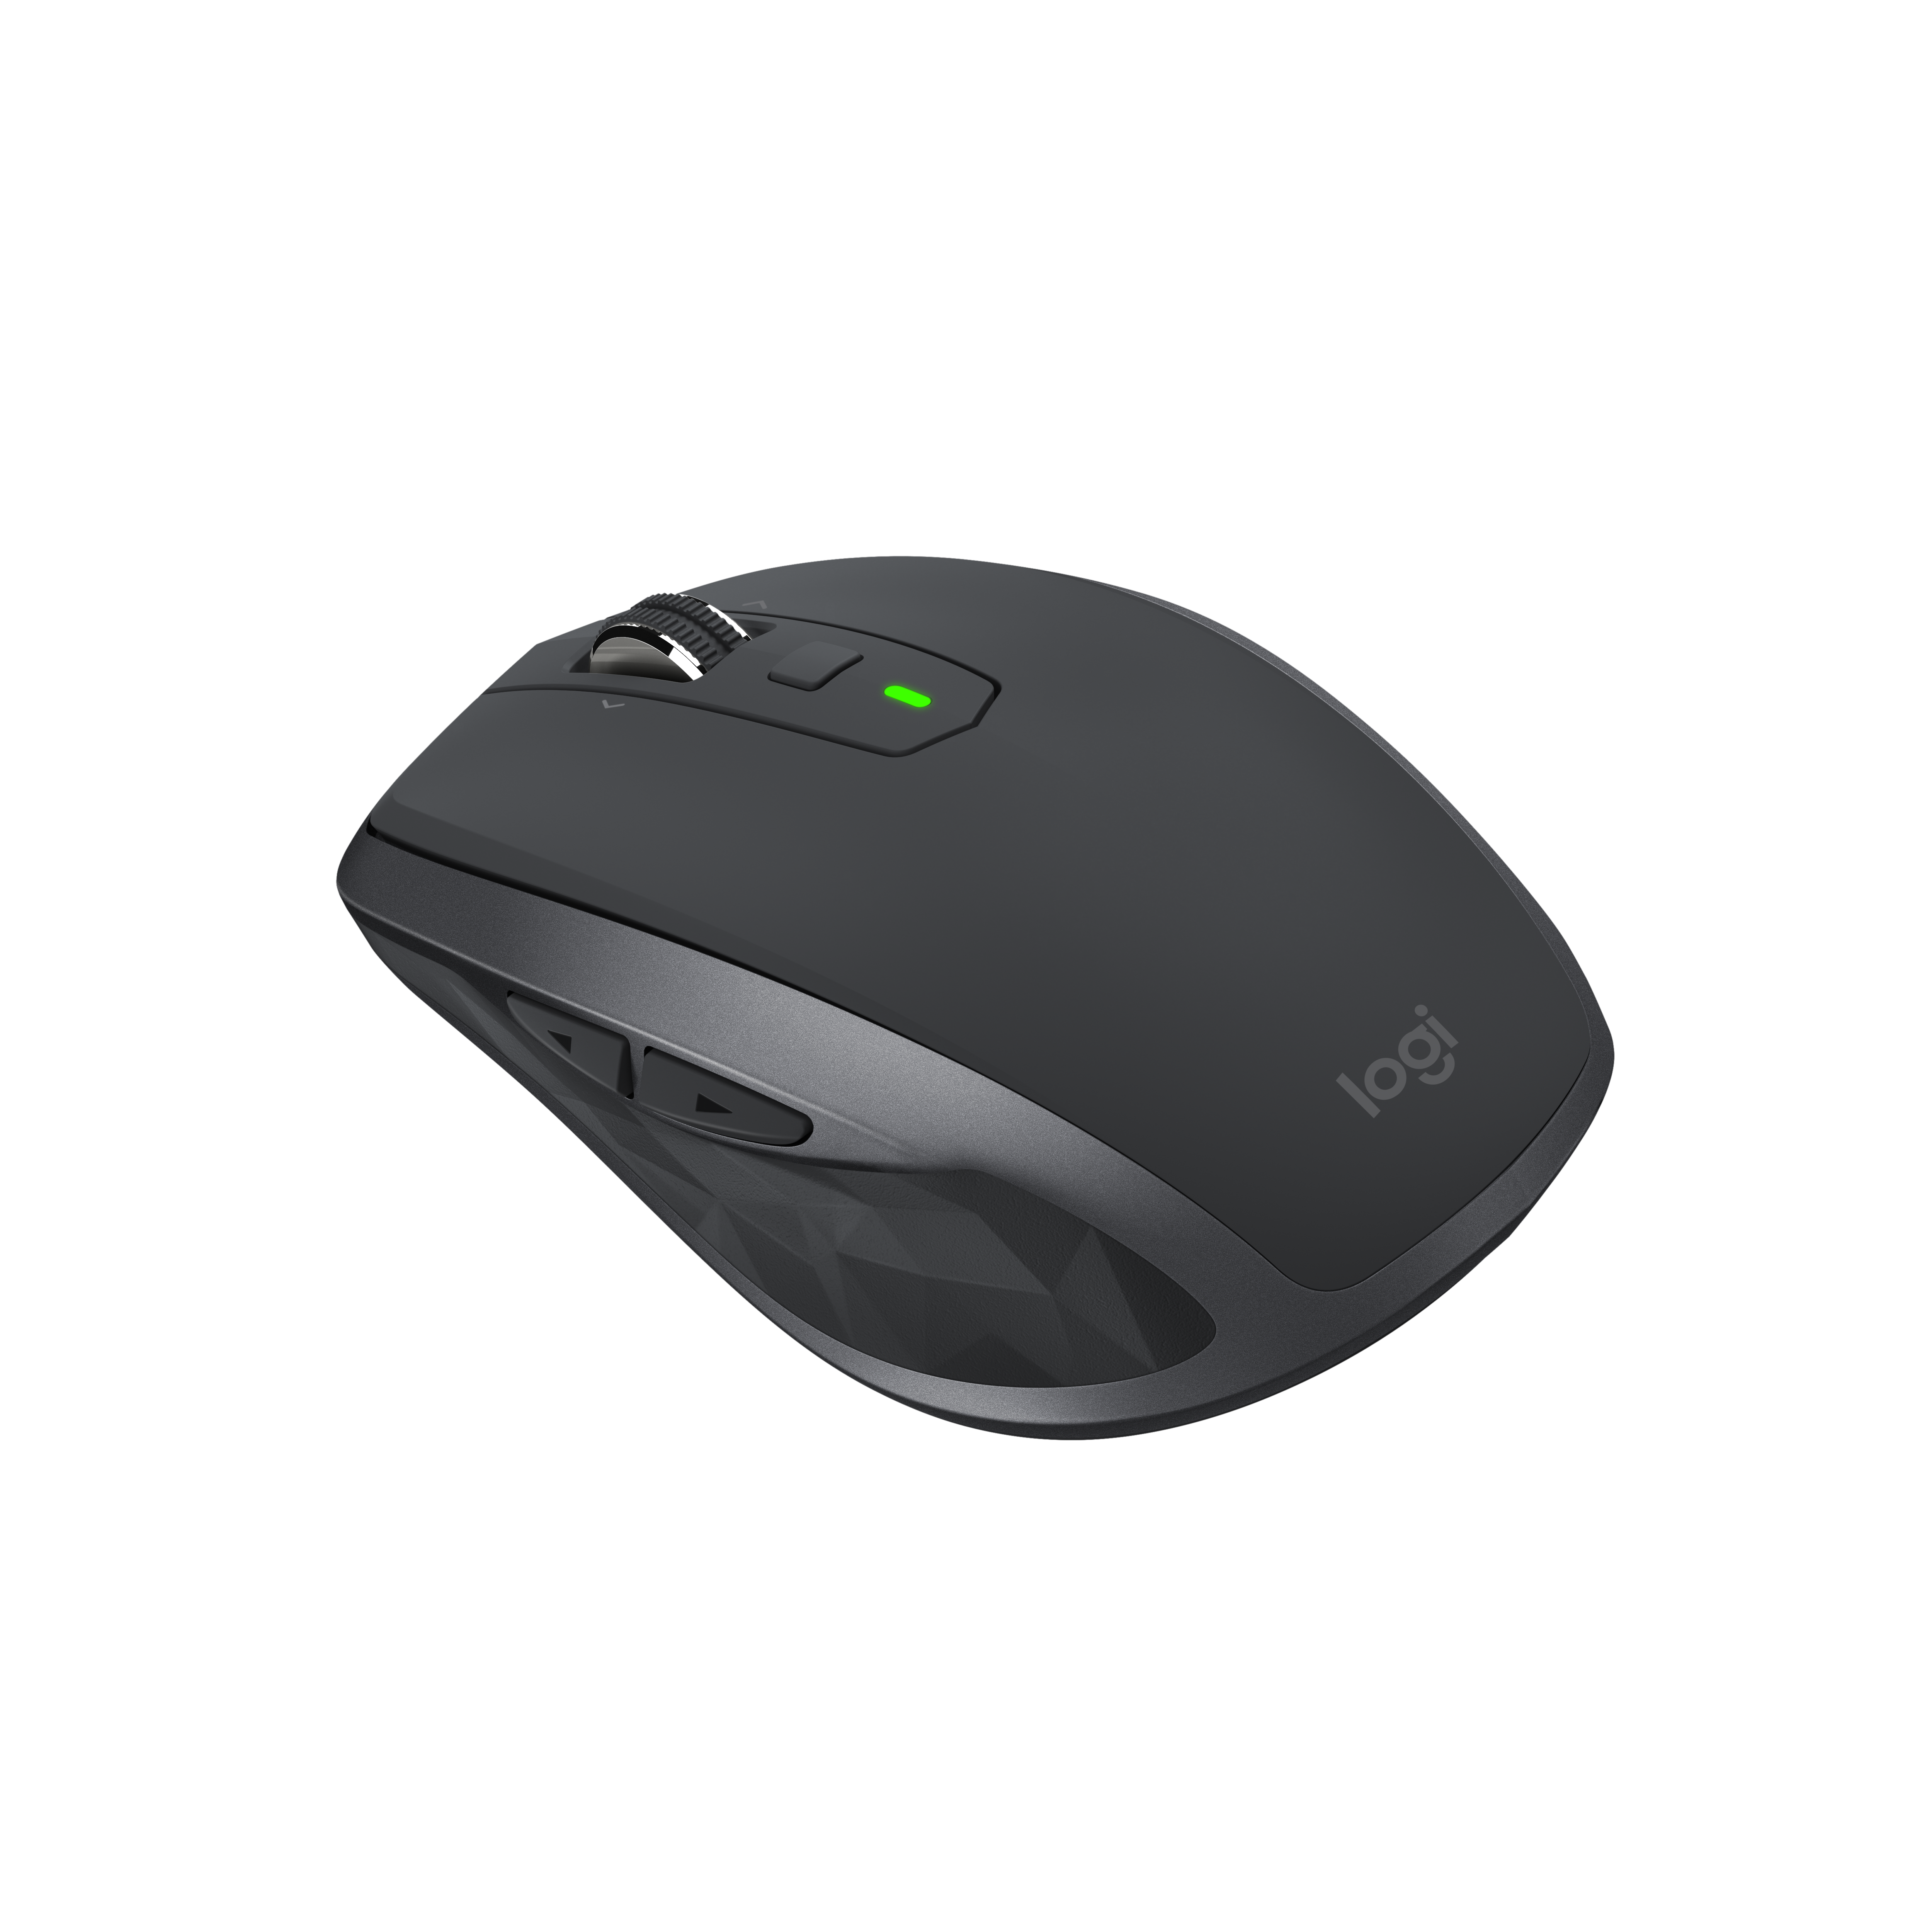 Logitech Flow lets you control multiple computers with one mouse